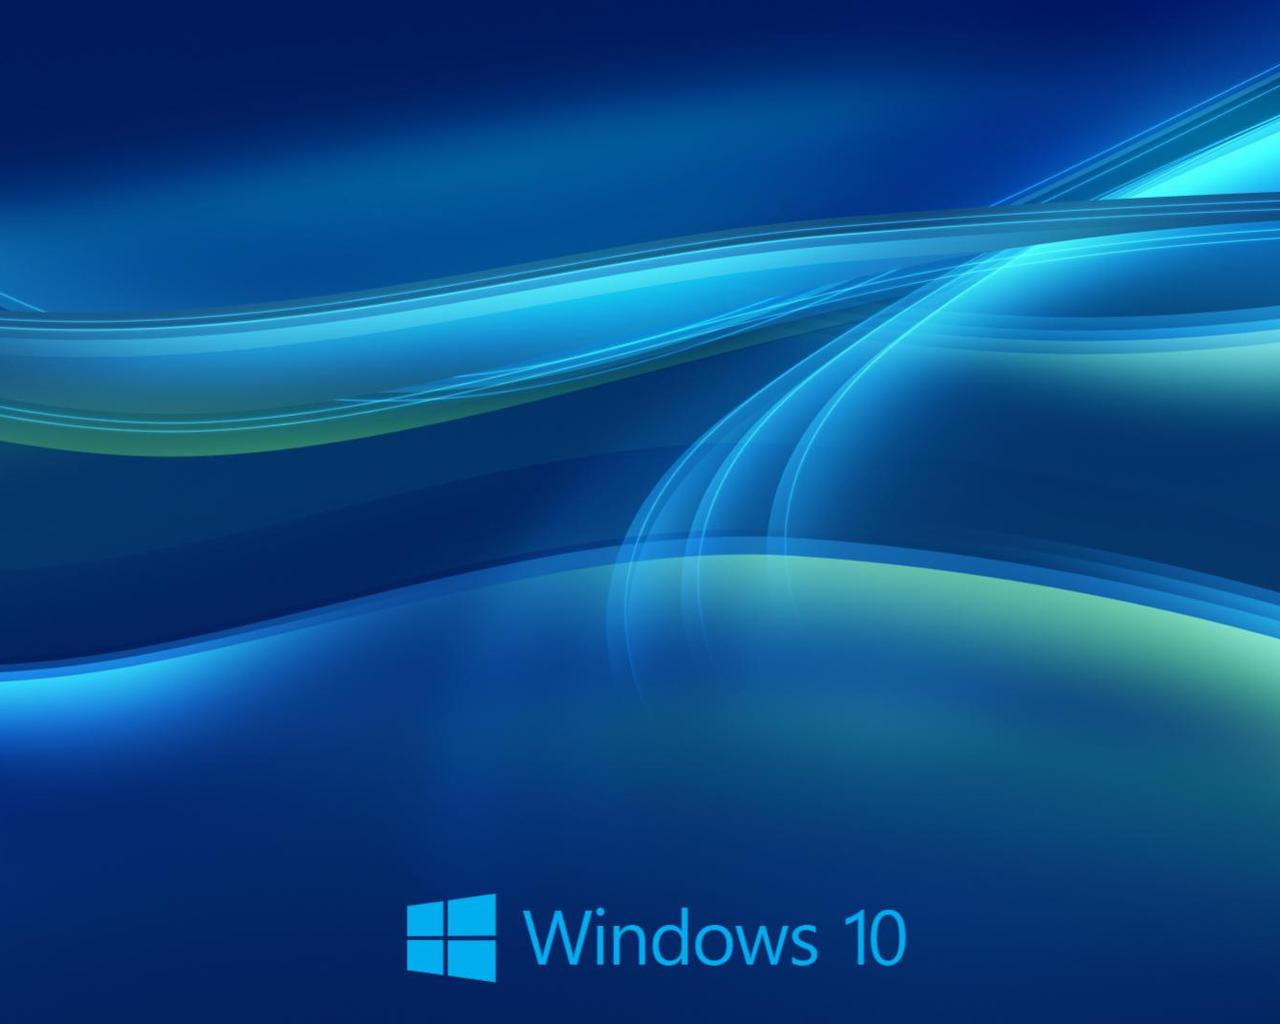 Creative Windows 10 Wallpaper: Beautiful Windows 10 Wallpaper Wallpaper